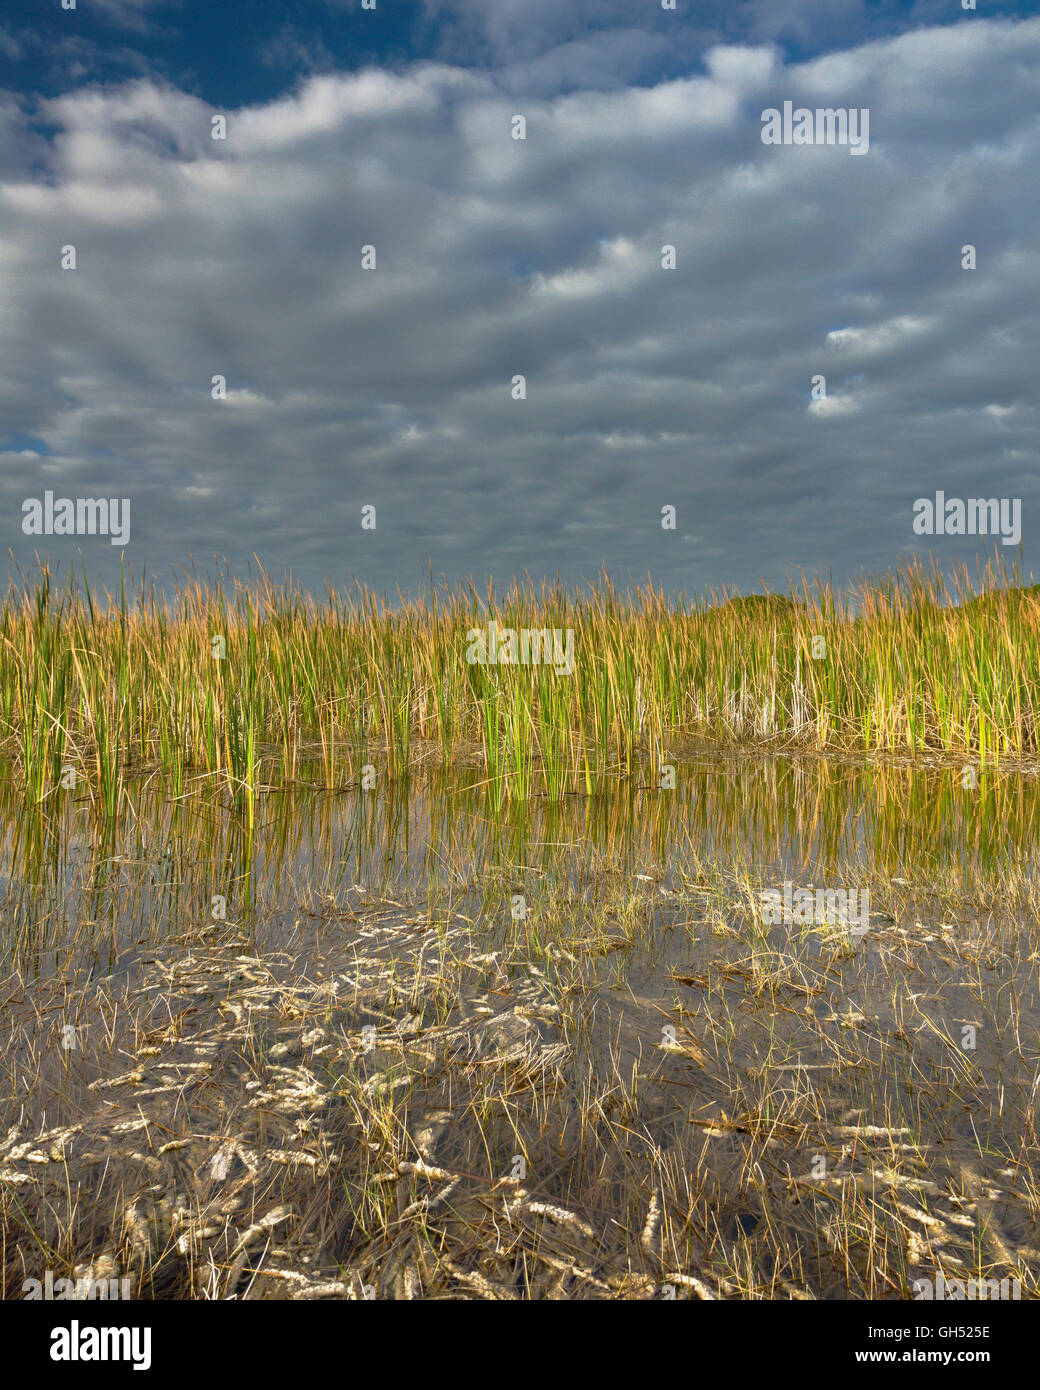 Sawgrass and periphyton in the Big Cypress - Stock Image